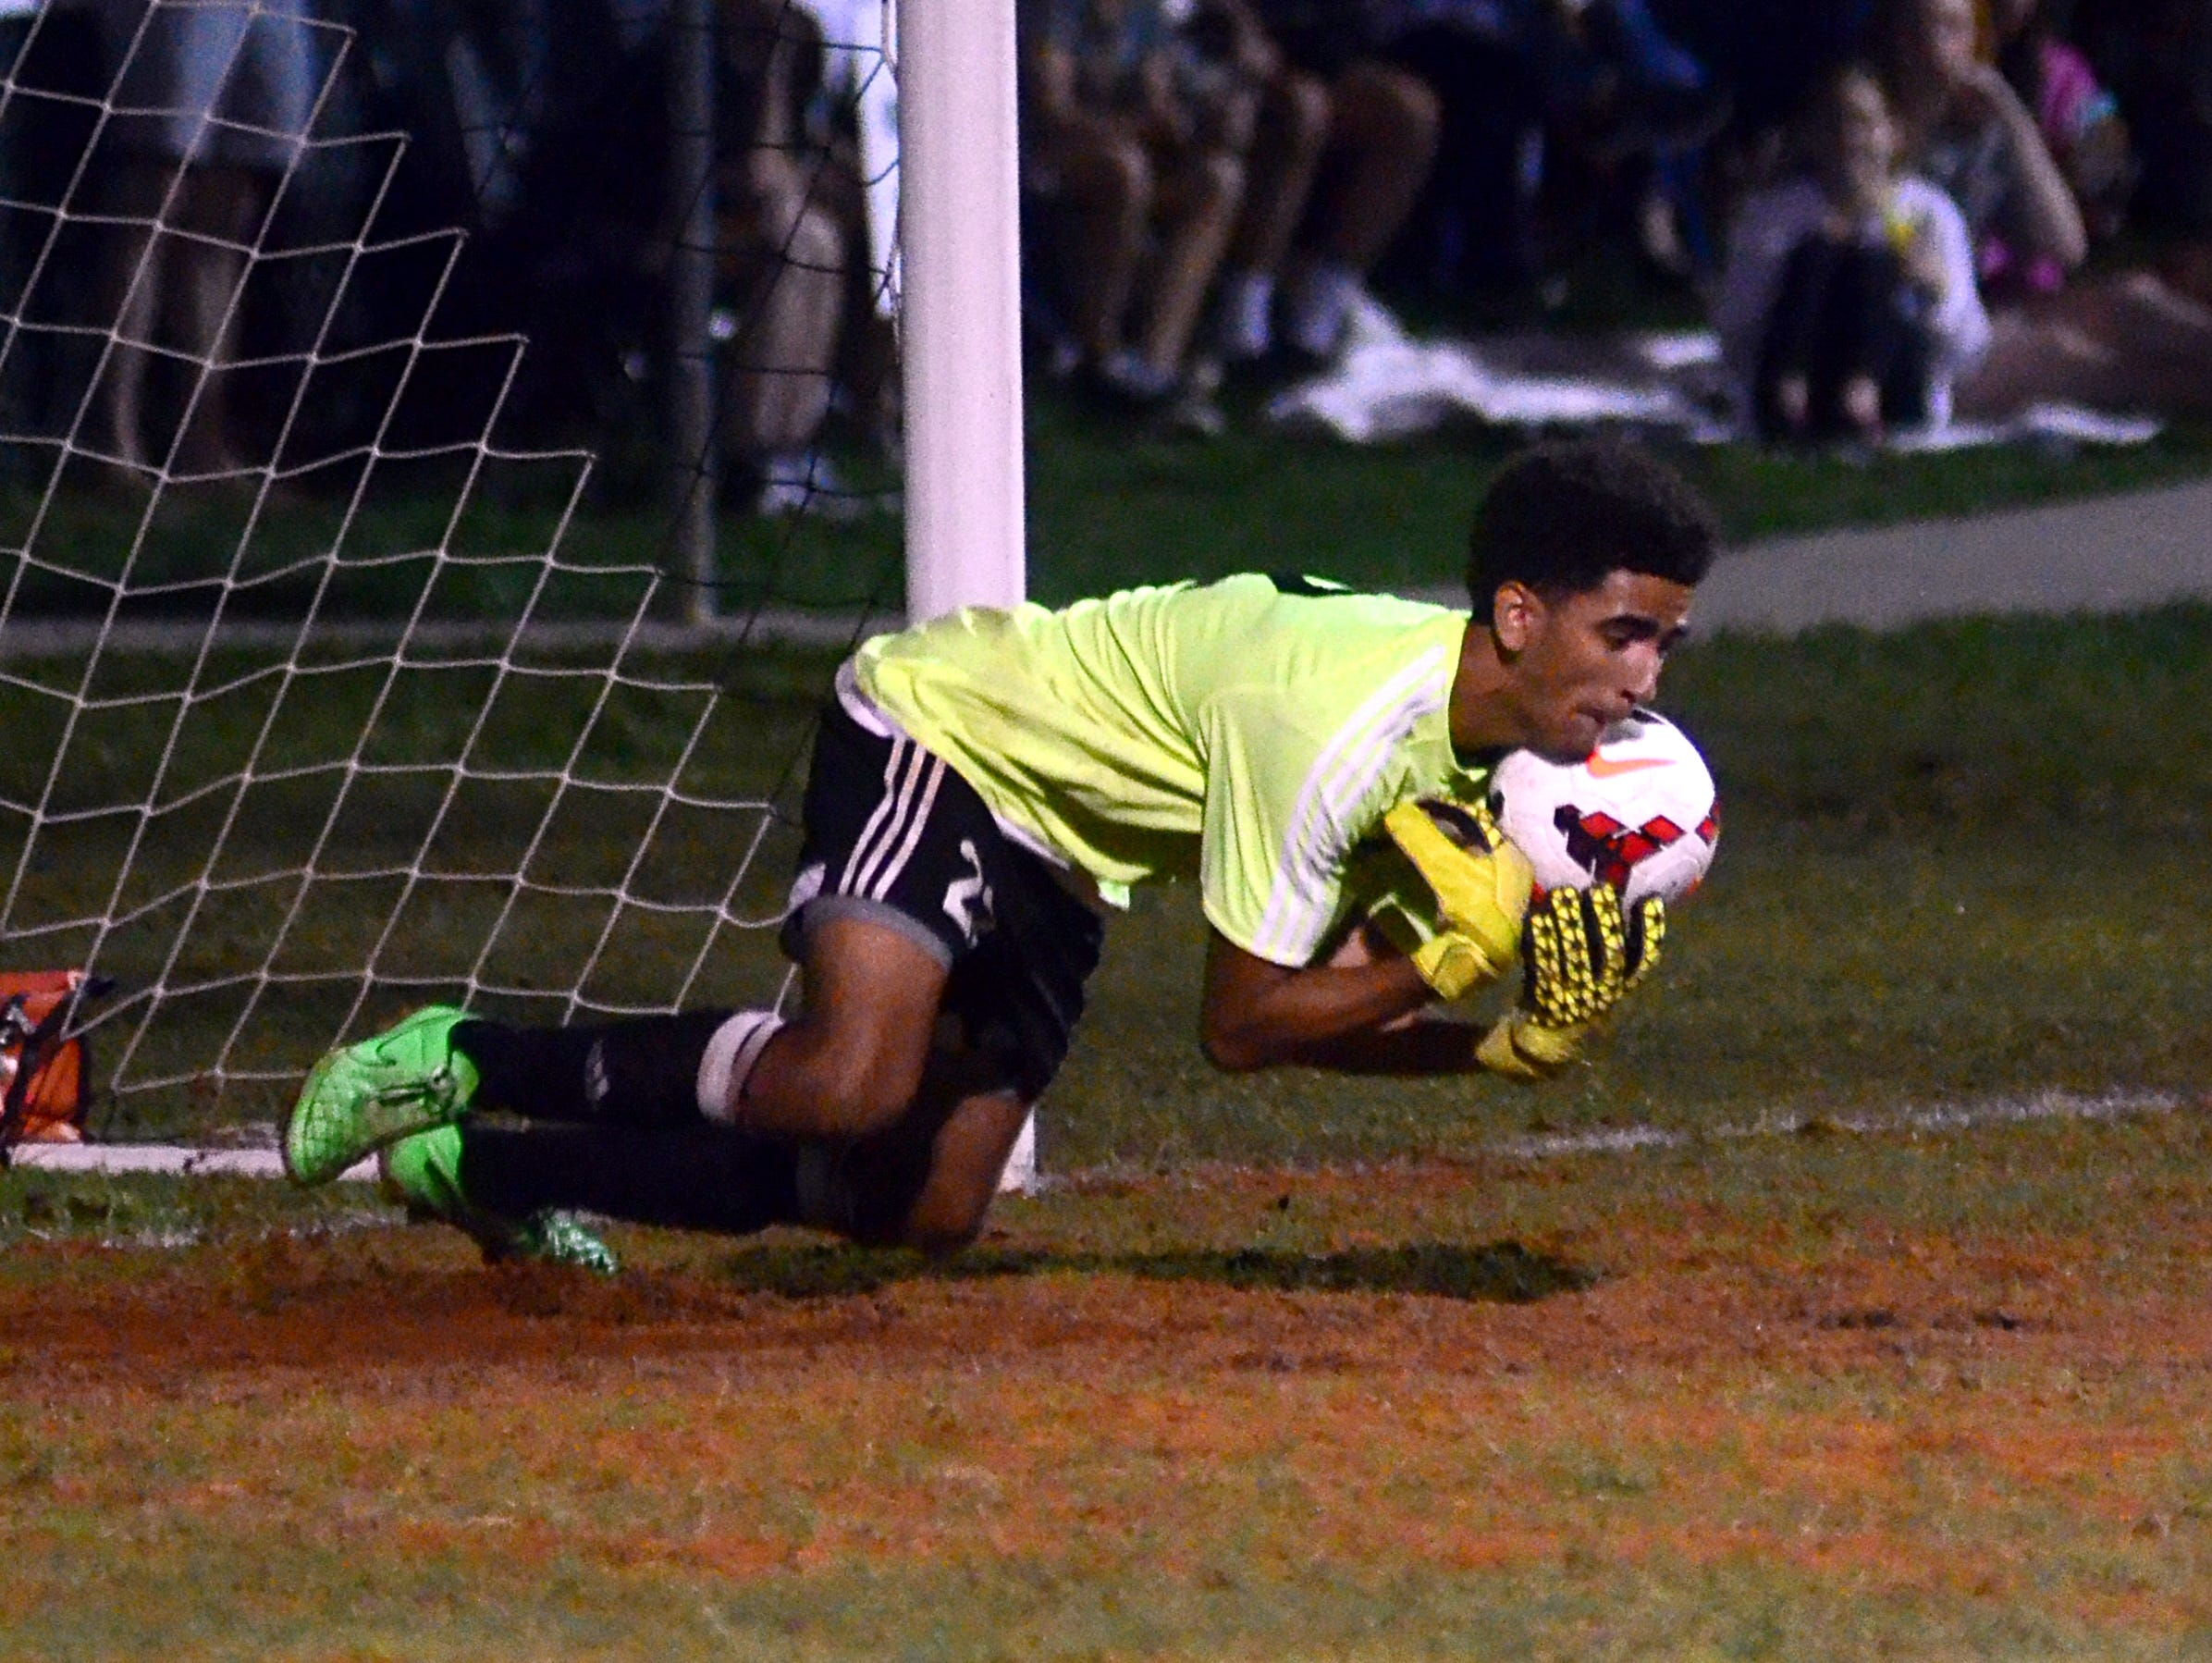 Gallatin High senior Deonte Kensinger makes a sprawling save during first-half action. Kensinger made 16 saves in the Green Wave's 2-1 loss.